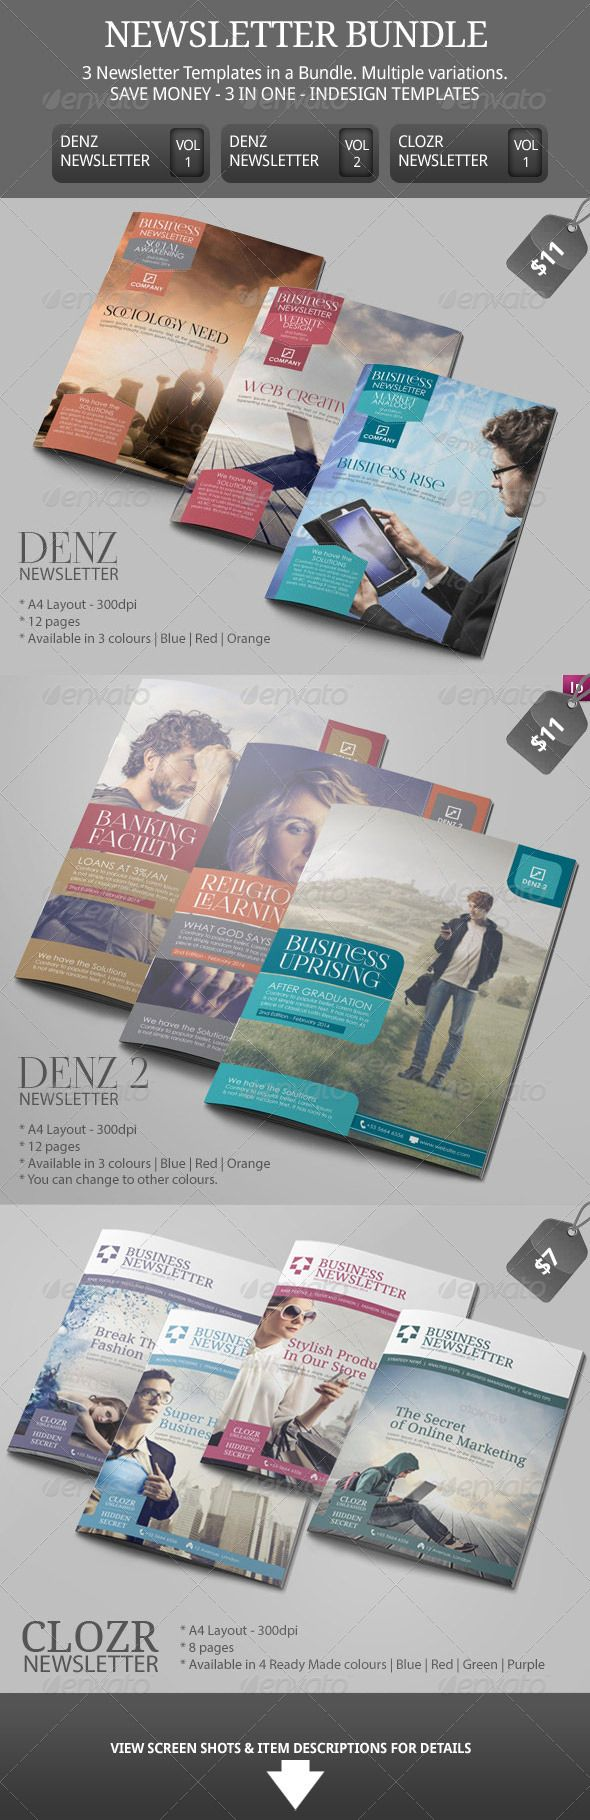 Best Newsletter Ideas   Indesign Templates Images On